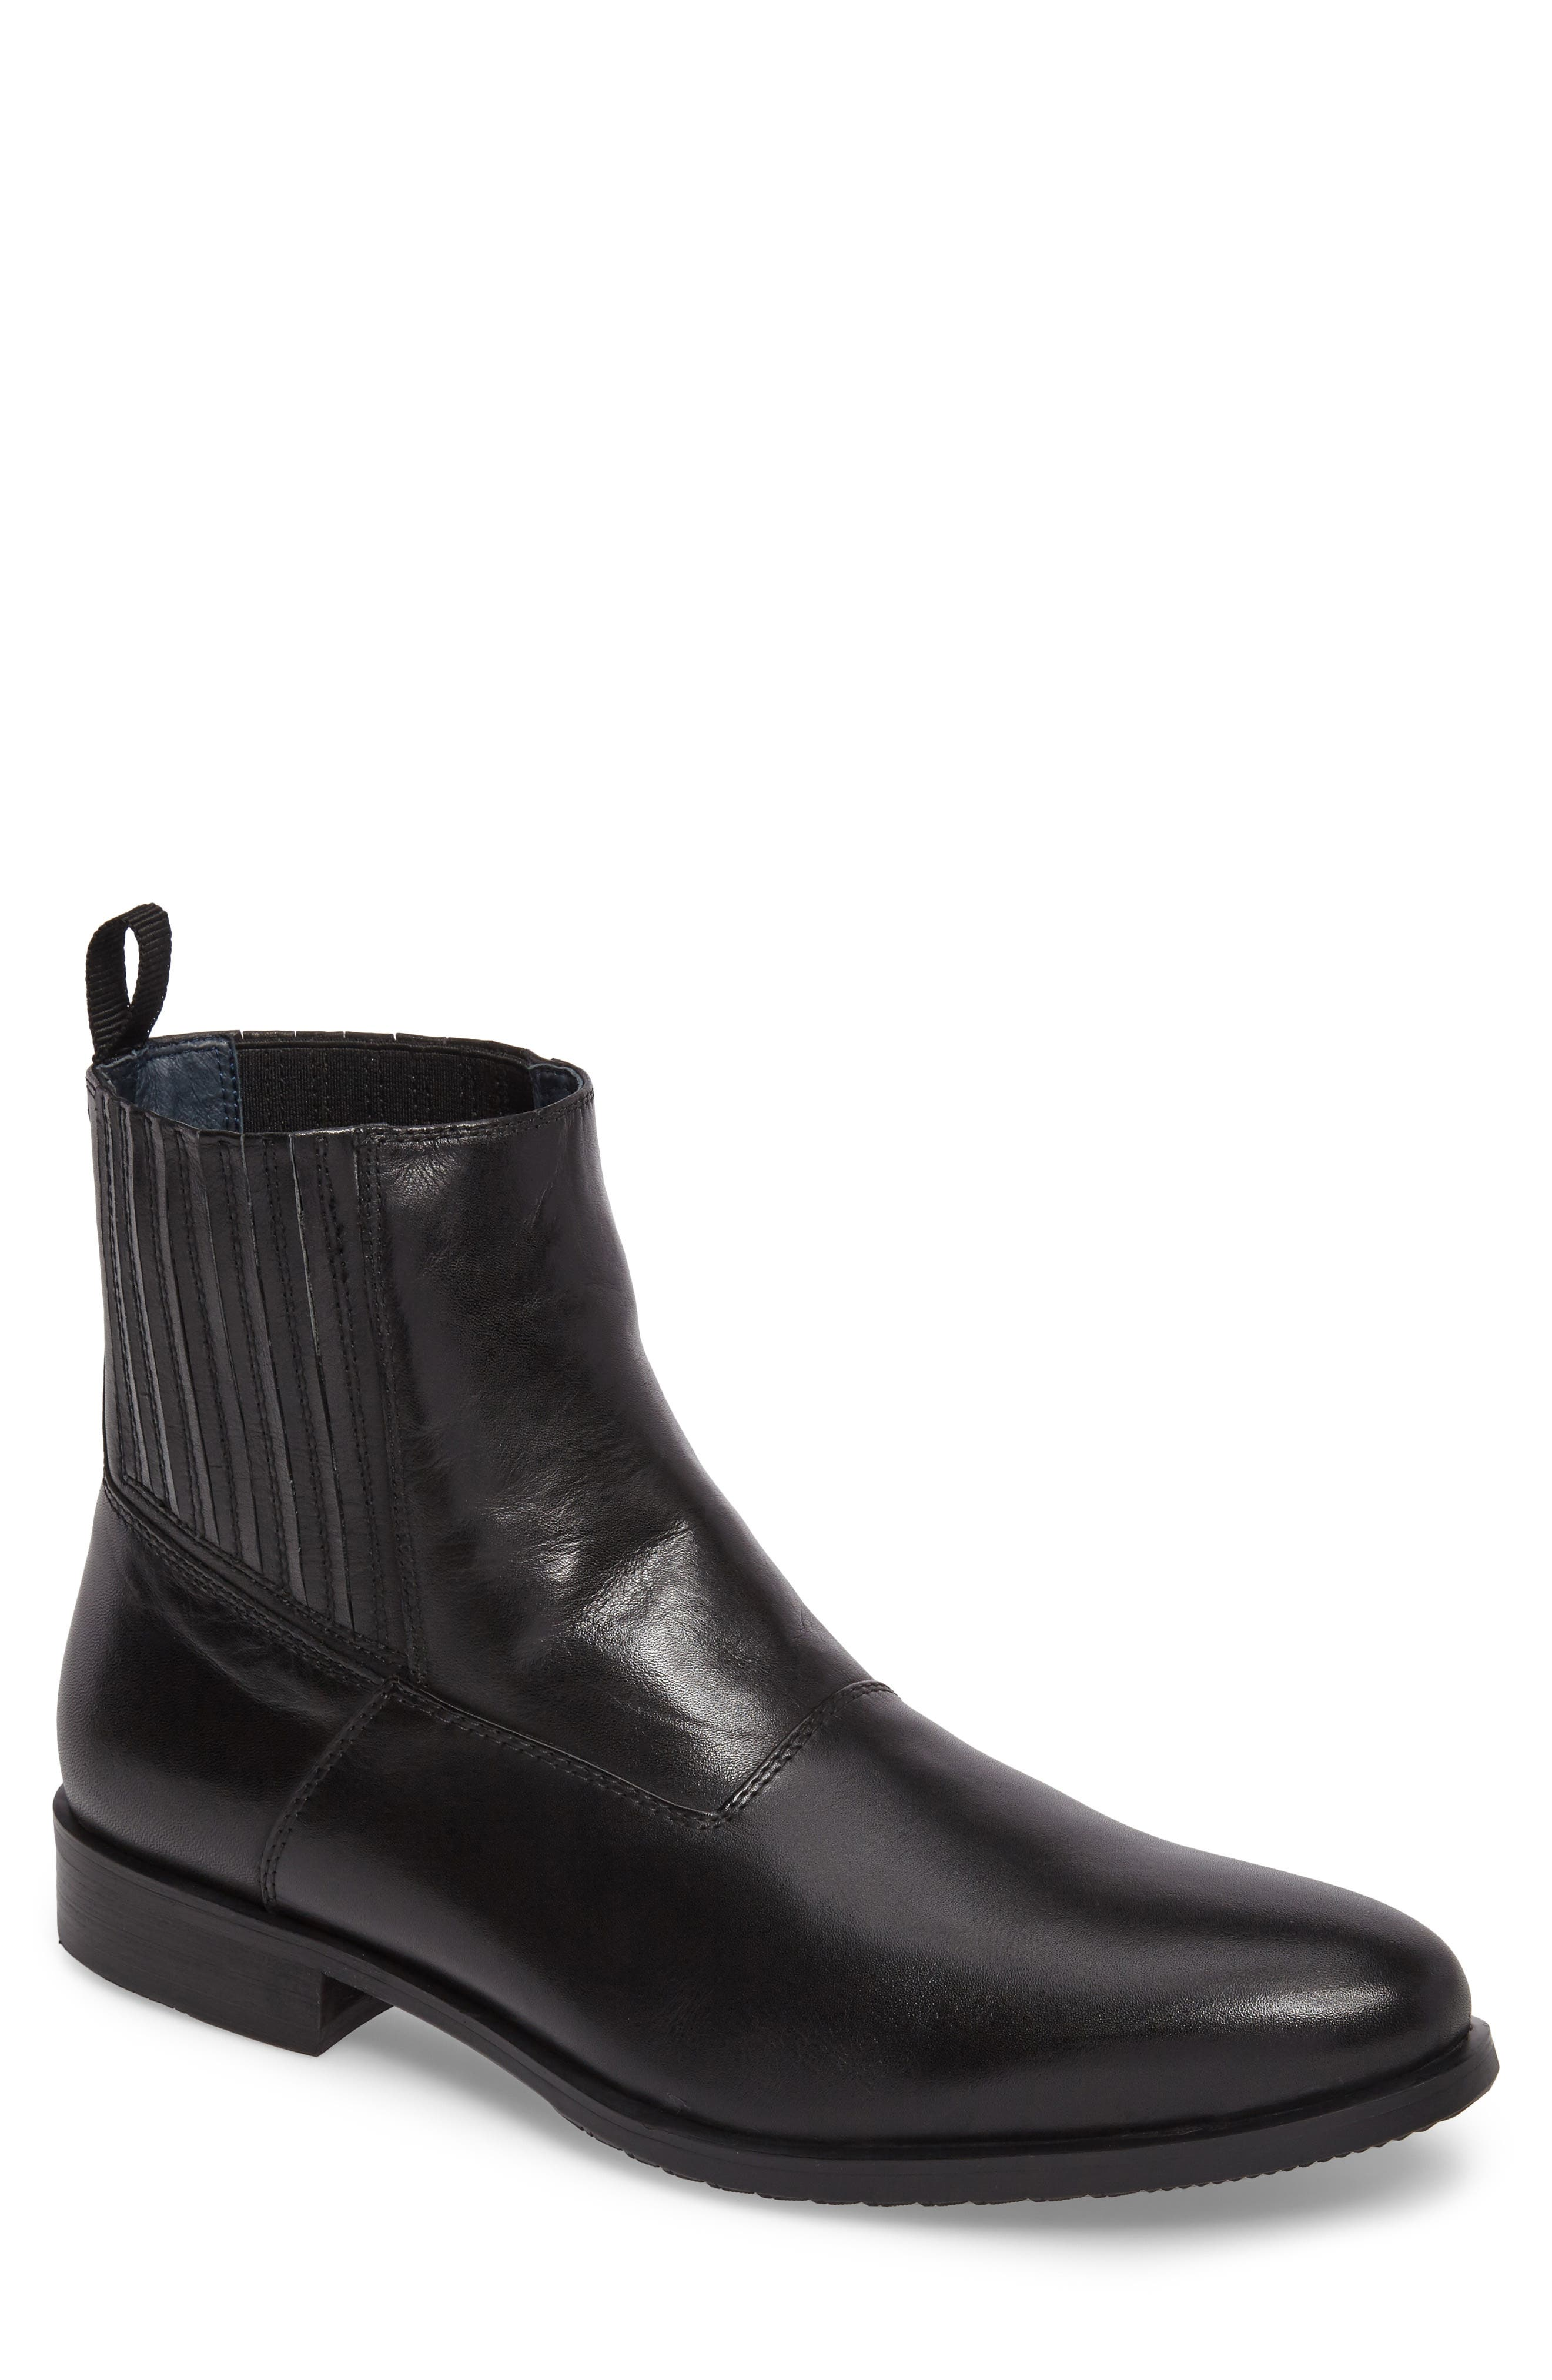 Guardi Zip Boot,                         Main,                         color, Black Leather